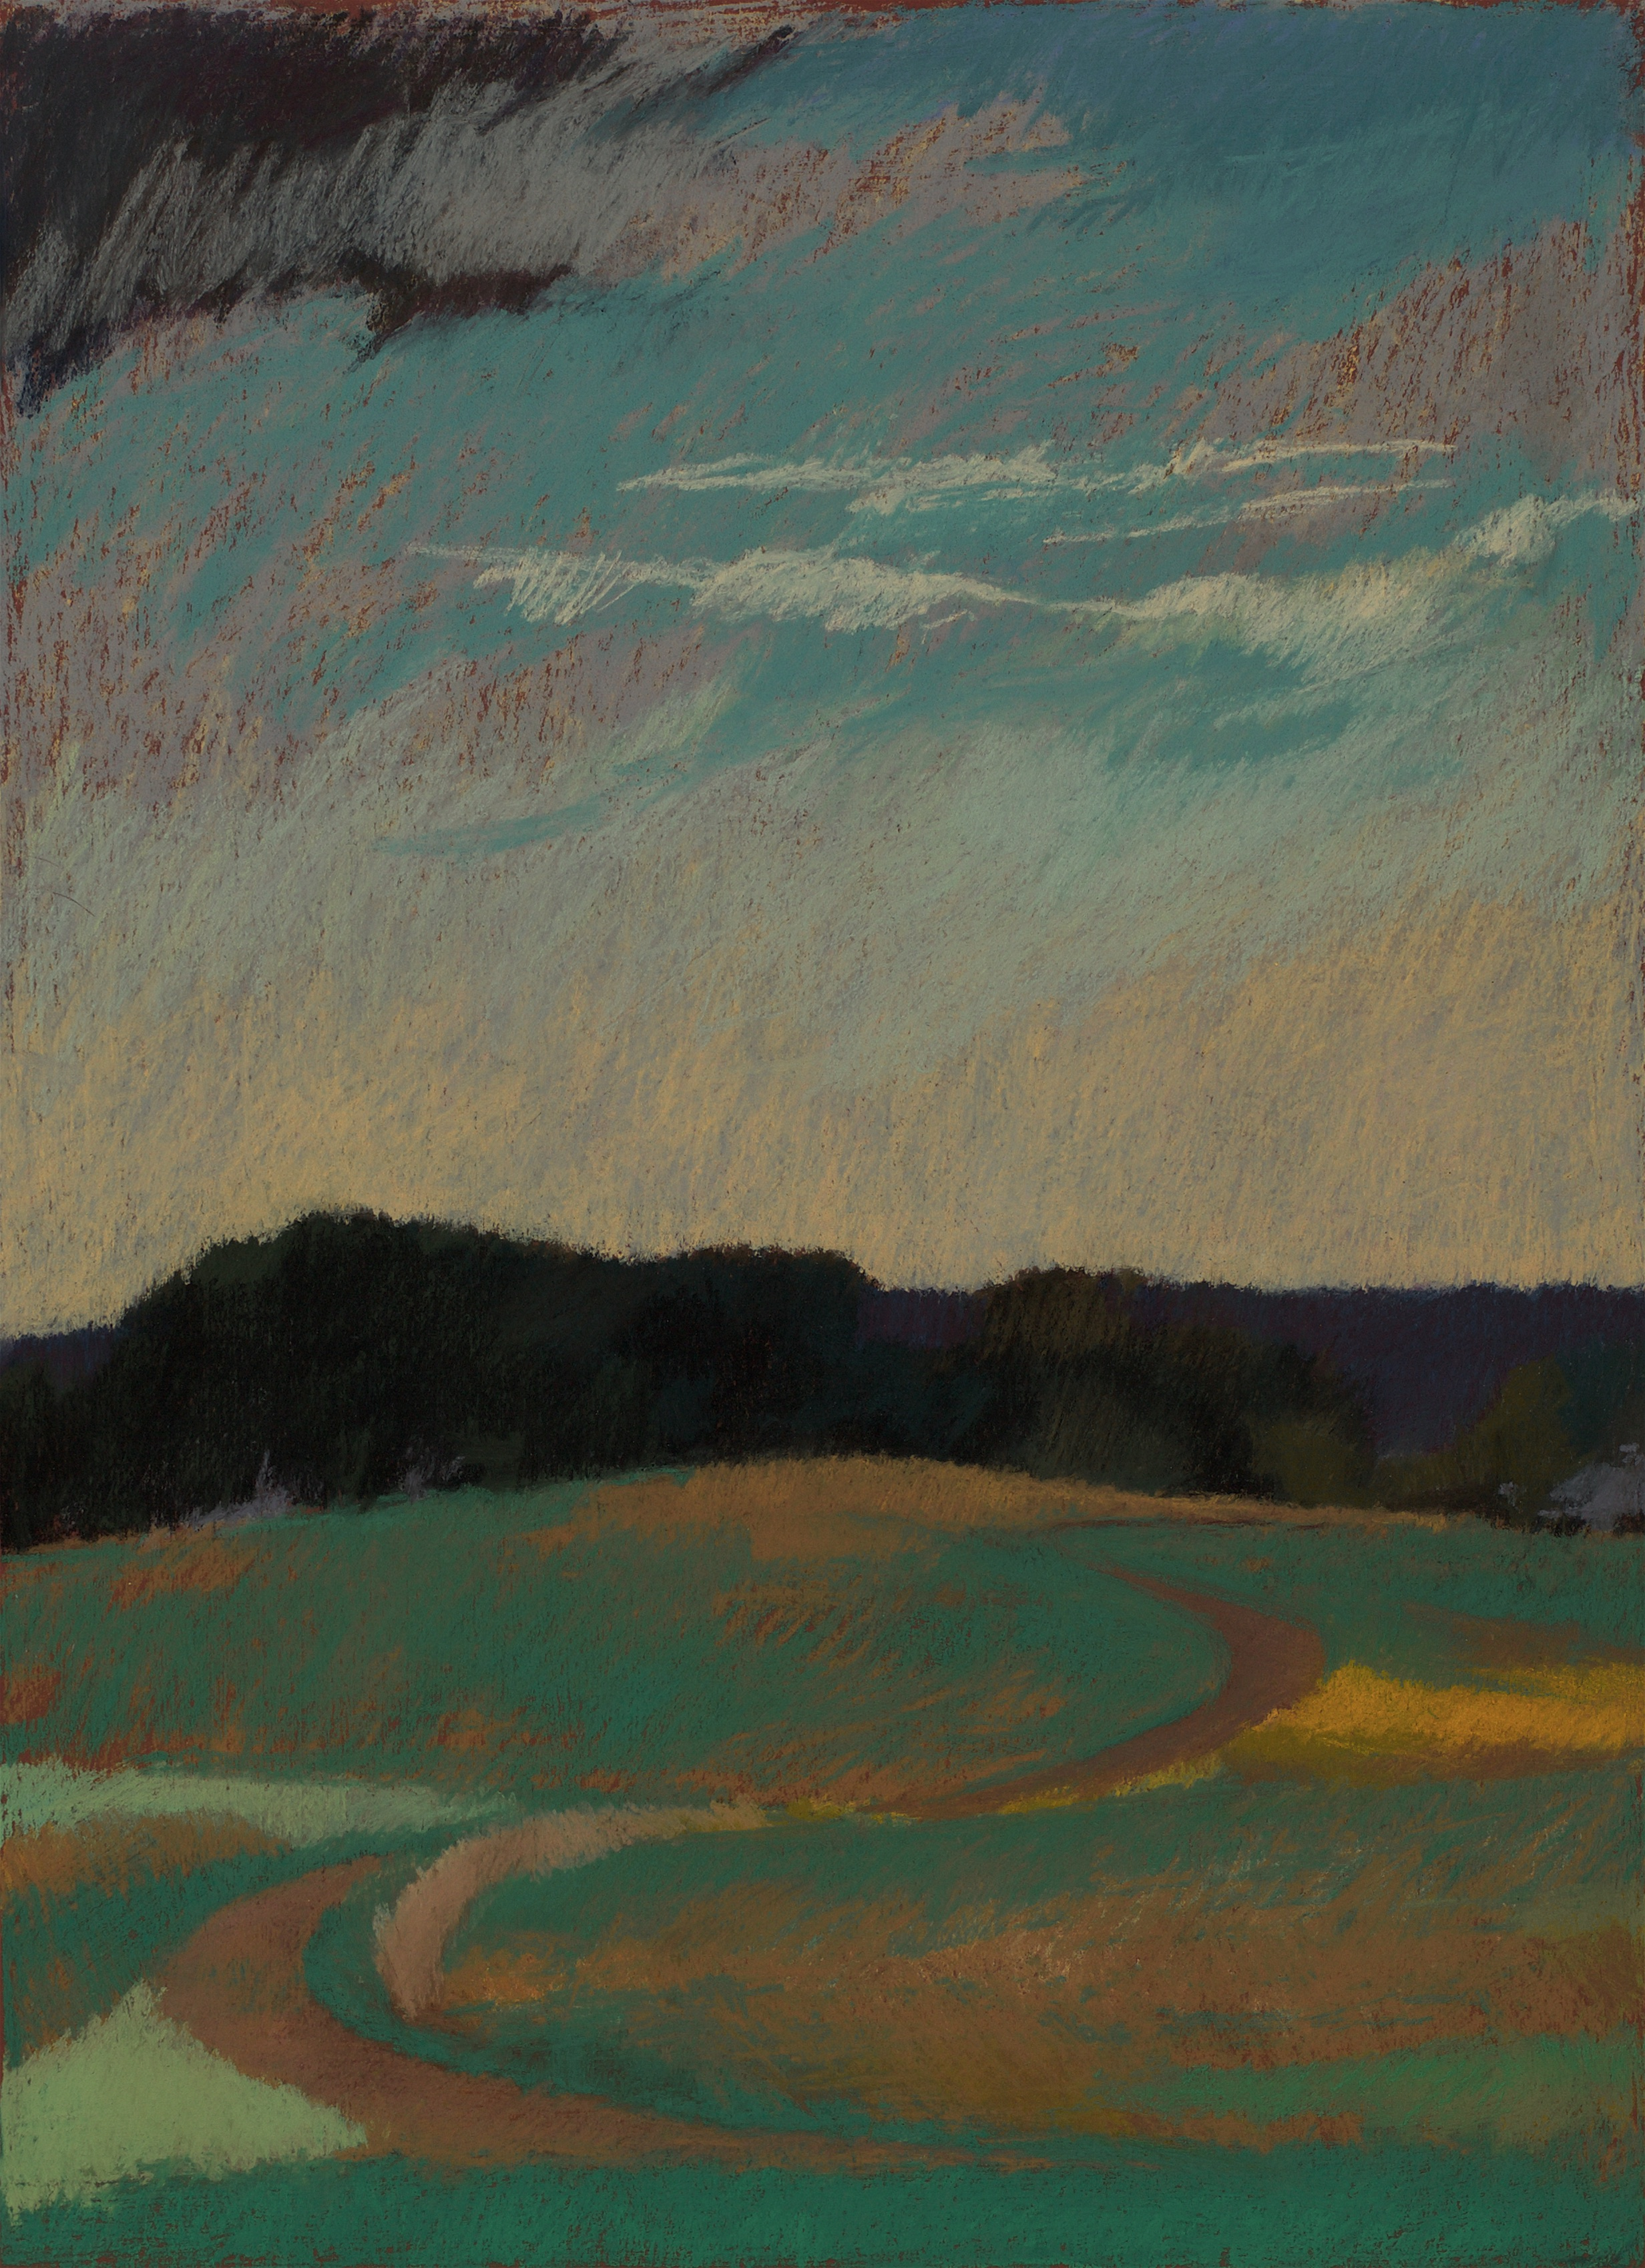 Rolling Acres Farm No. 2, Two Curves, Meander and Sit